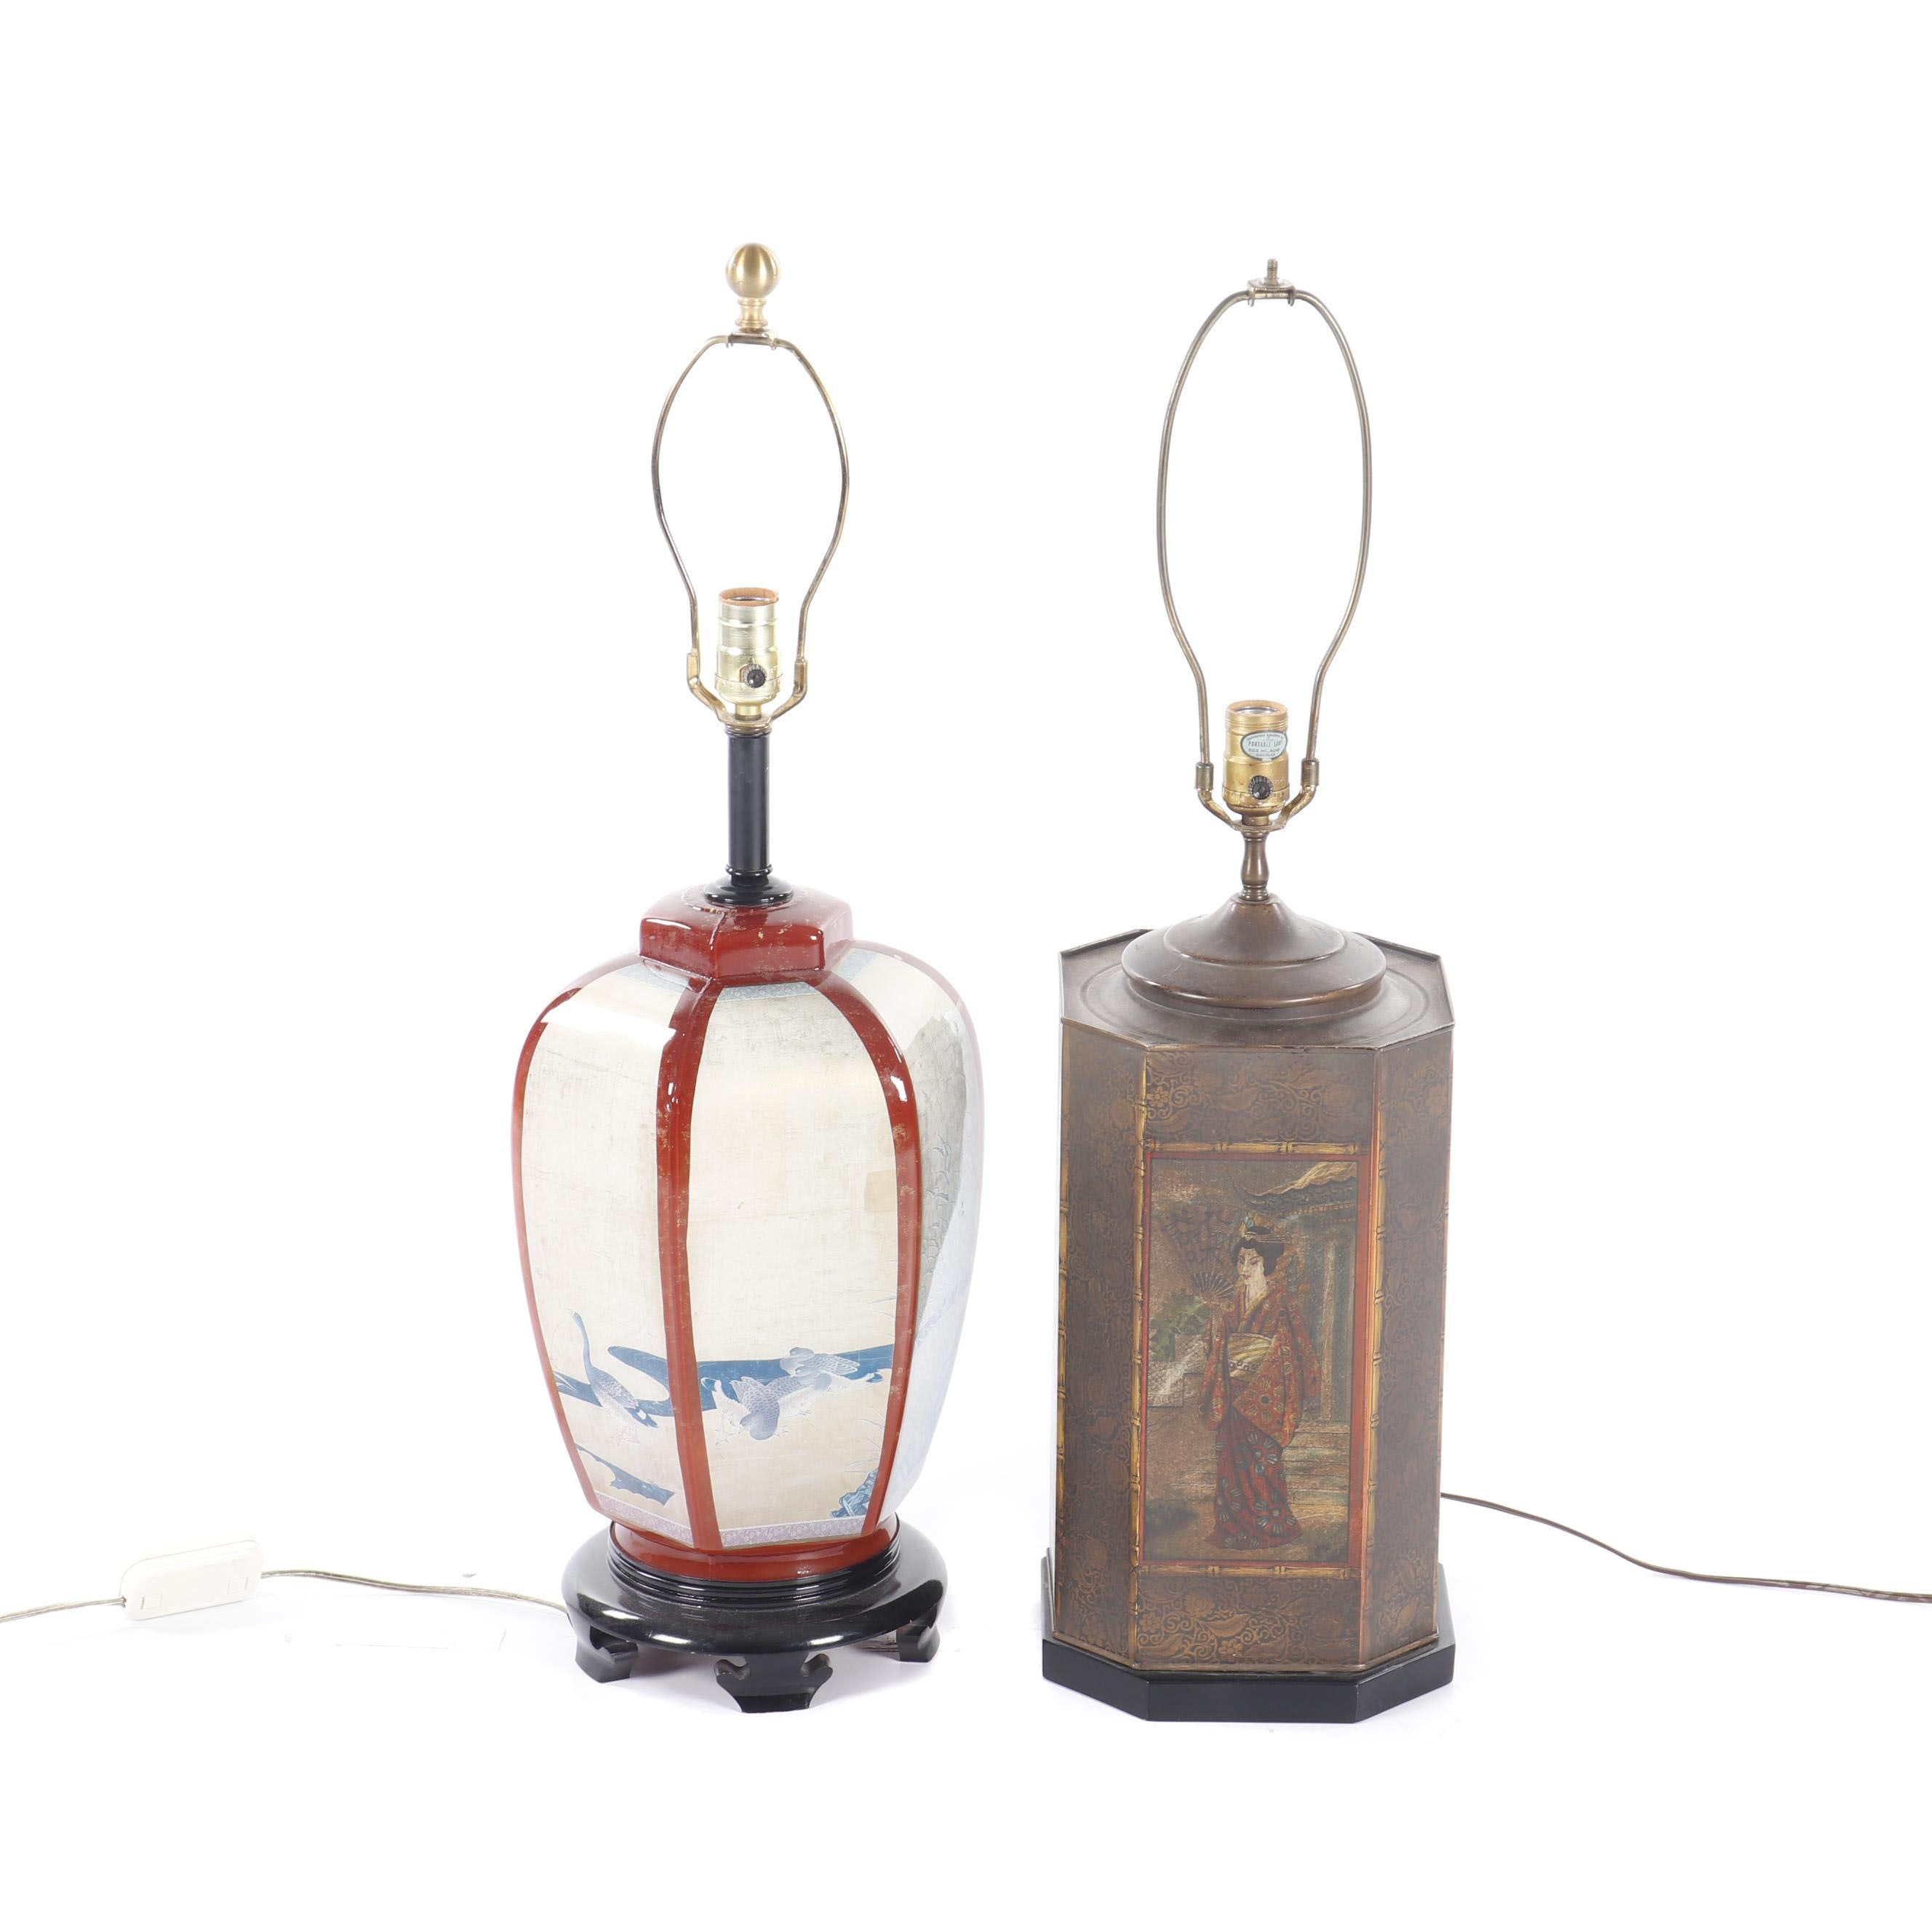 Asian Inspired Metal and Resin Table Lamps Featuring Chapman Portrait Lamp